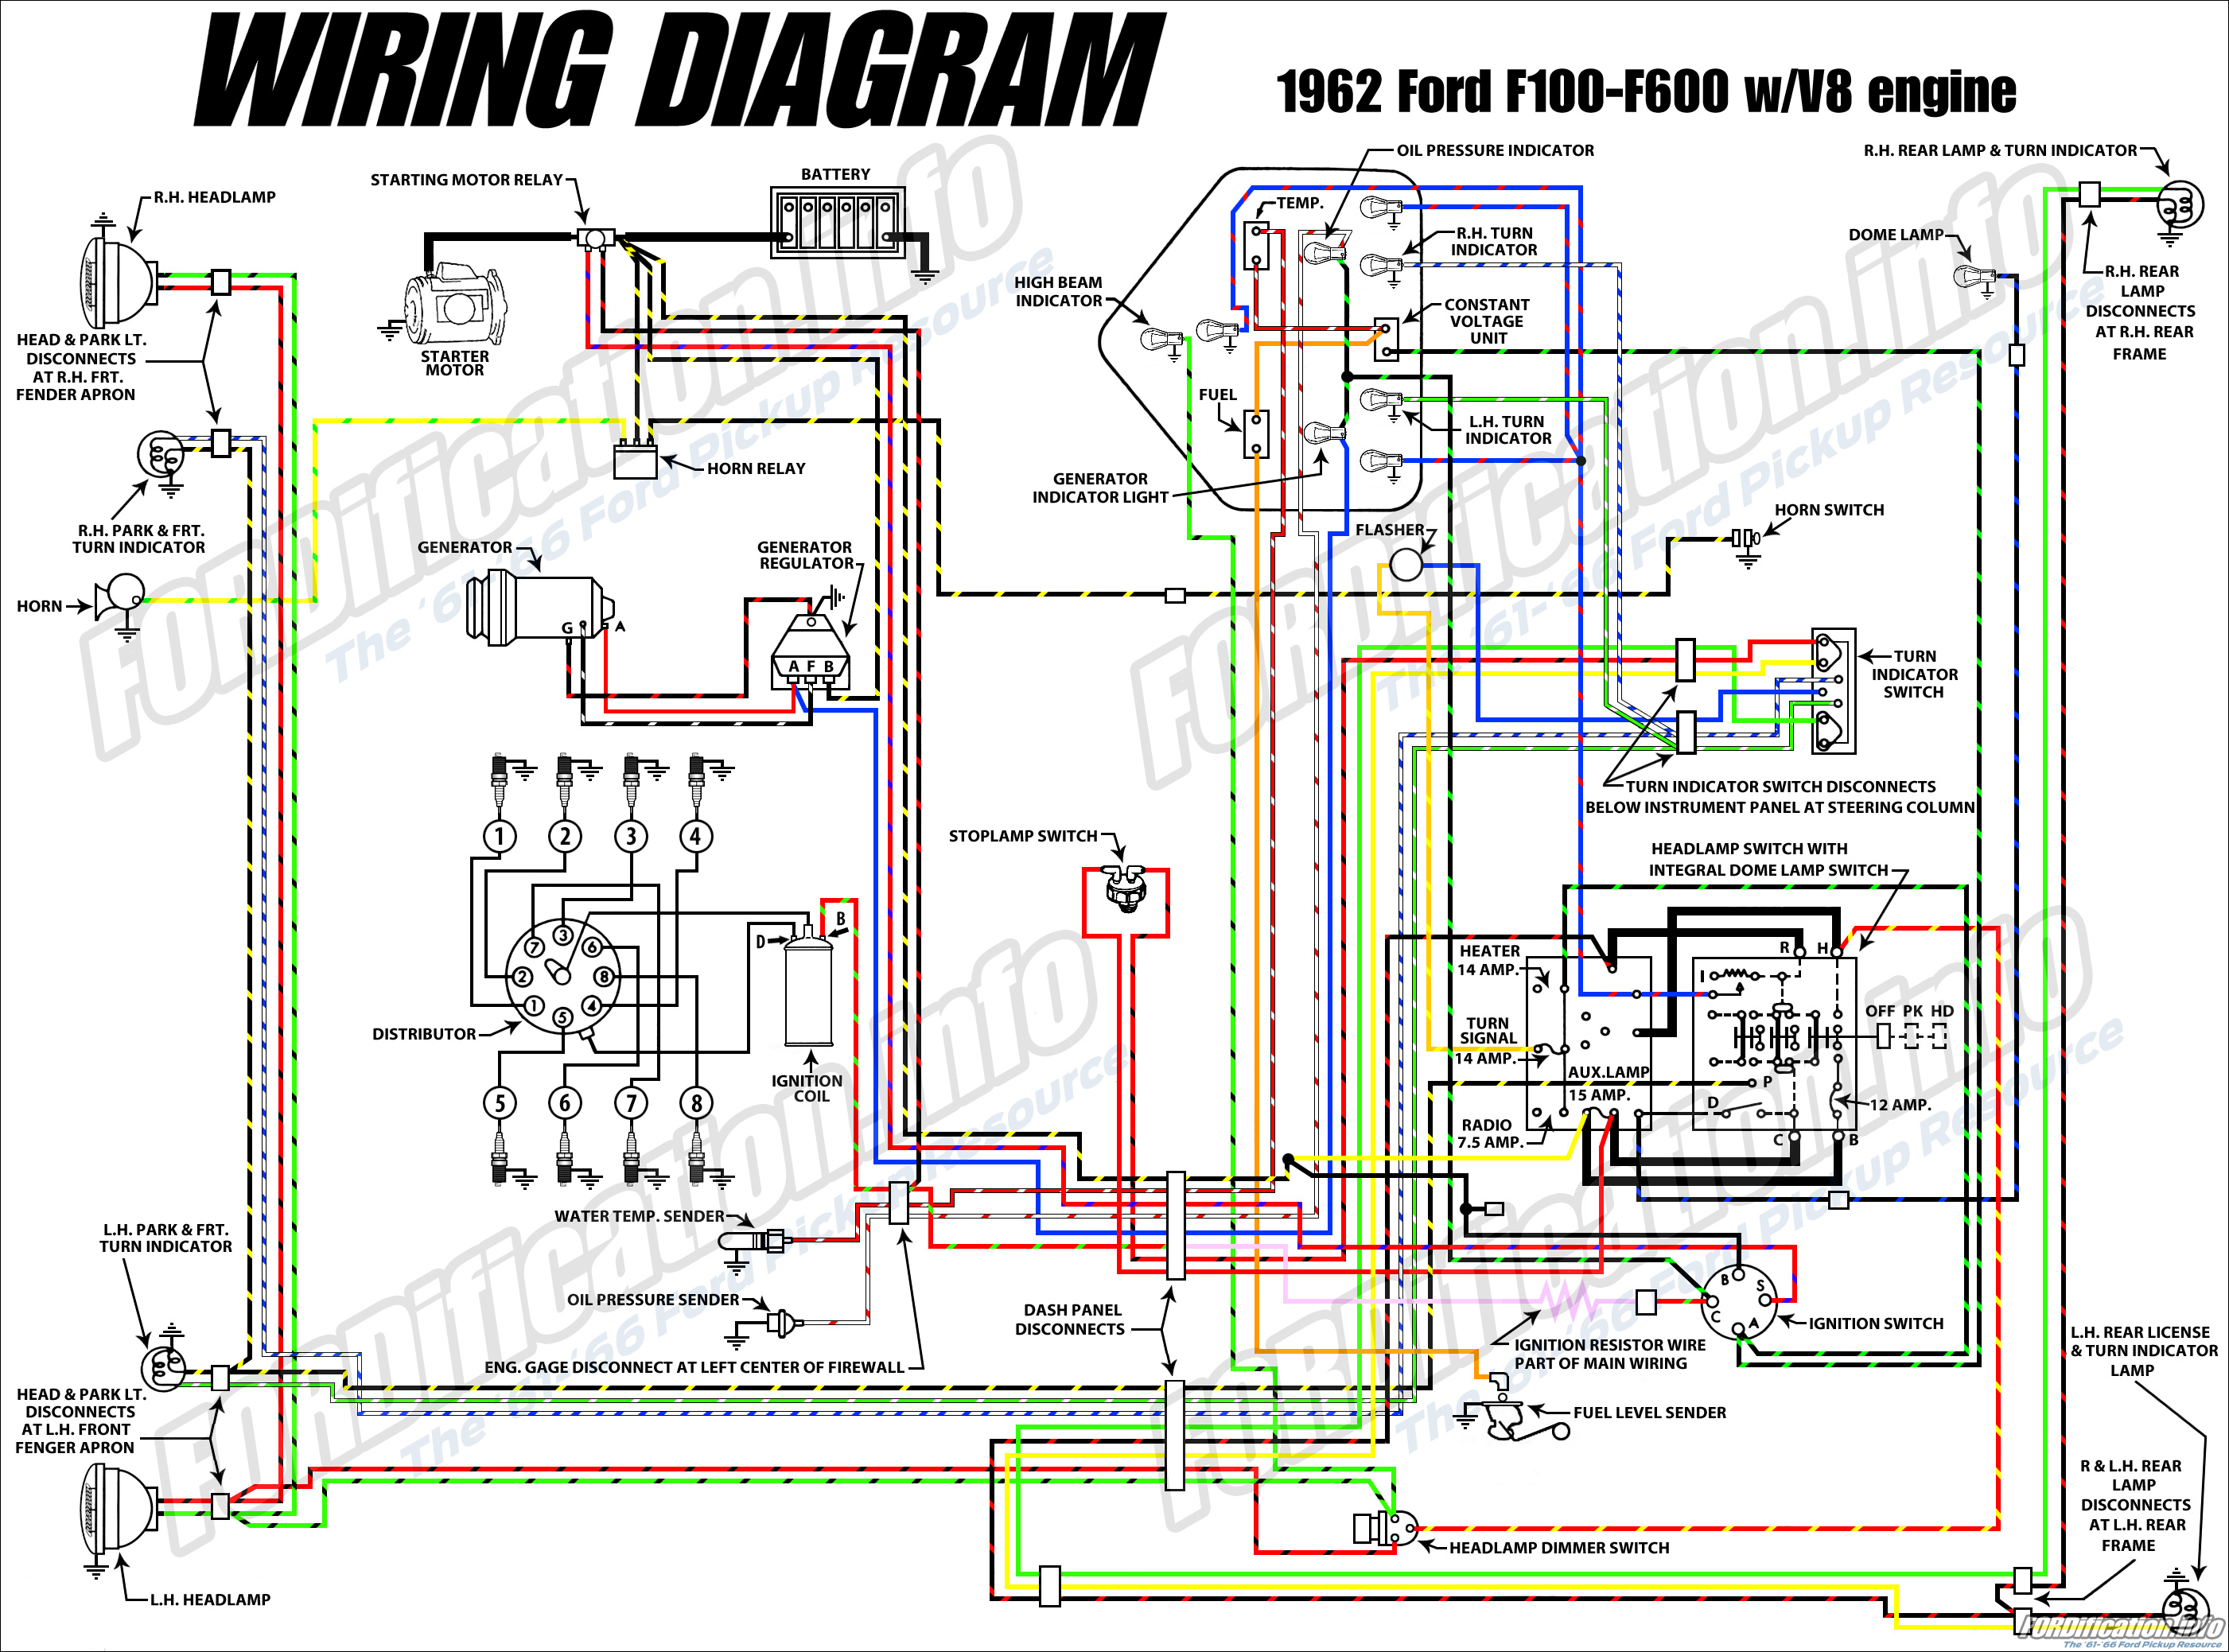 1966 ford headlight switch wiring schematics automotive wiring rh nfluencer  co 85 Mustang Headlight Switch Wiring Diagram 1956 Chevy Headlight Switch  Wiring ...